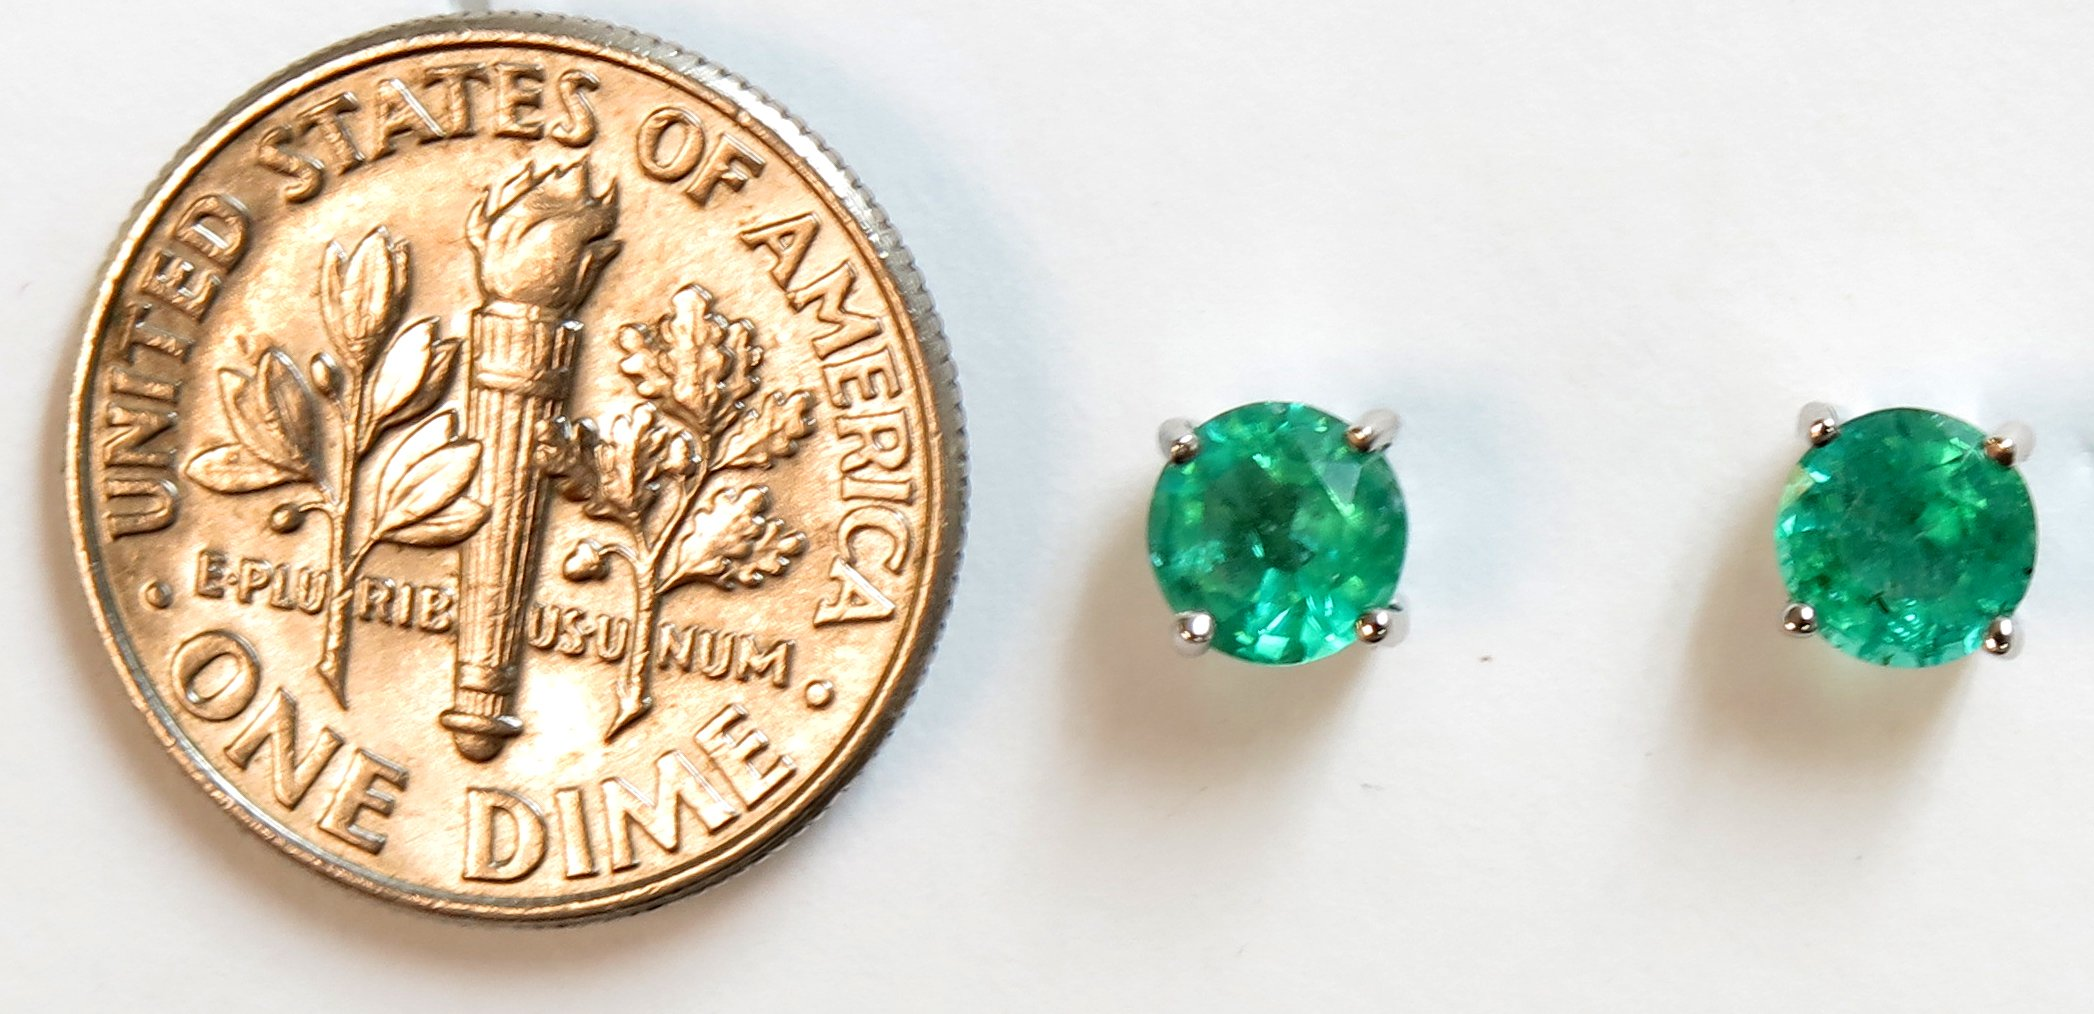 14K Solid White Gold Round 5.0mm Genuine AAA Emerald=1.00 ct. Stud Earrings by JewelMode (Image #2)